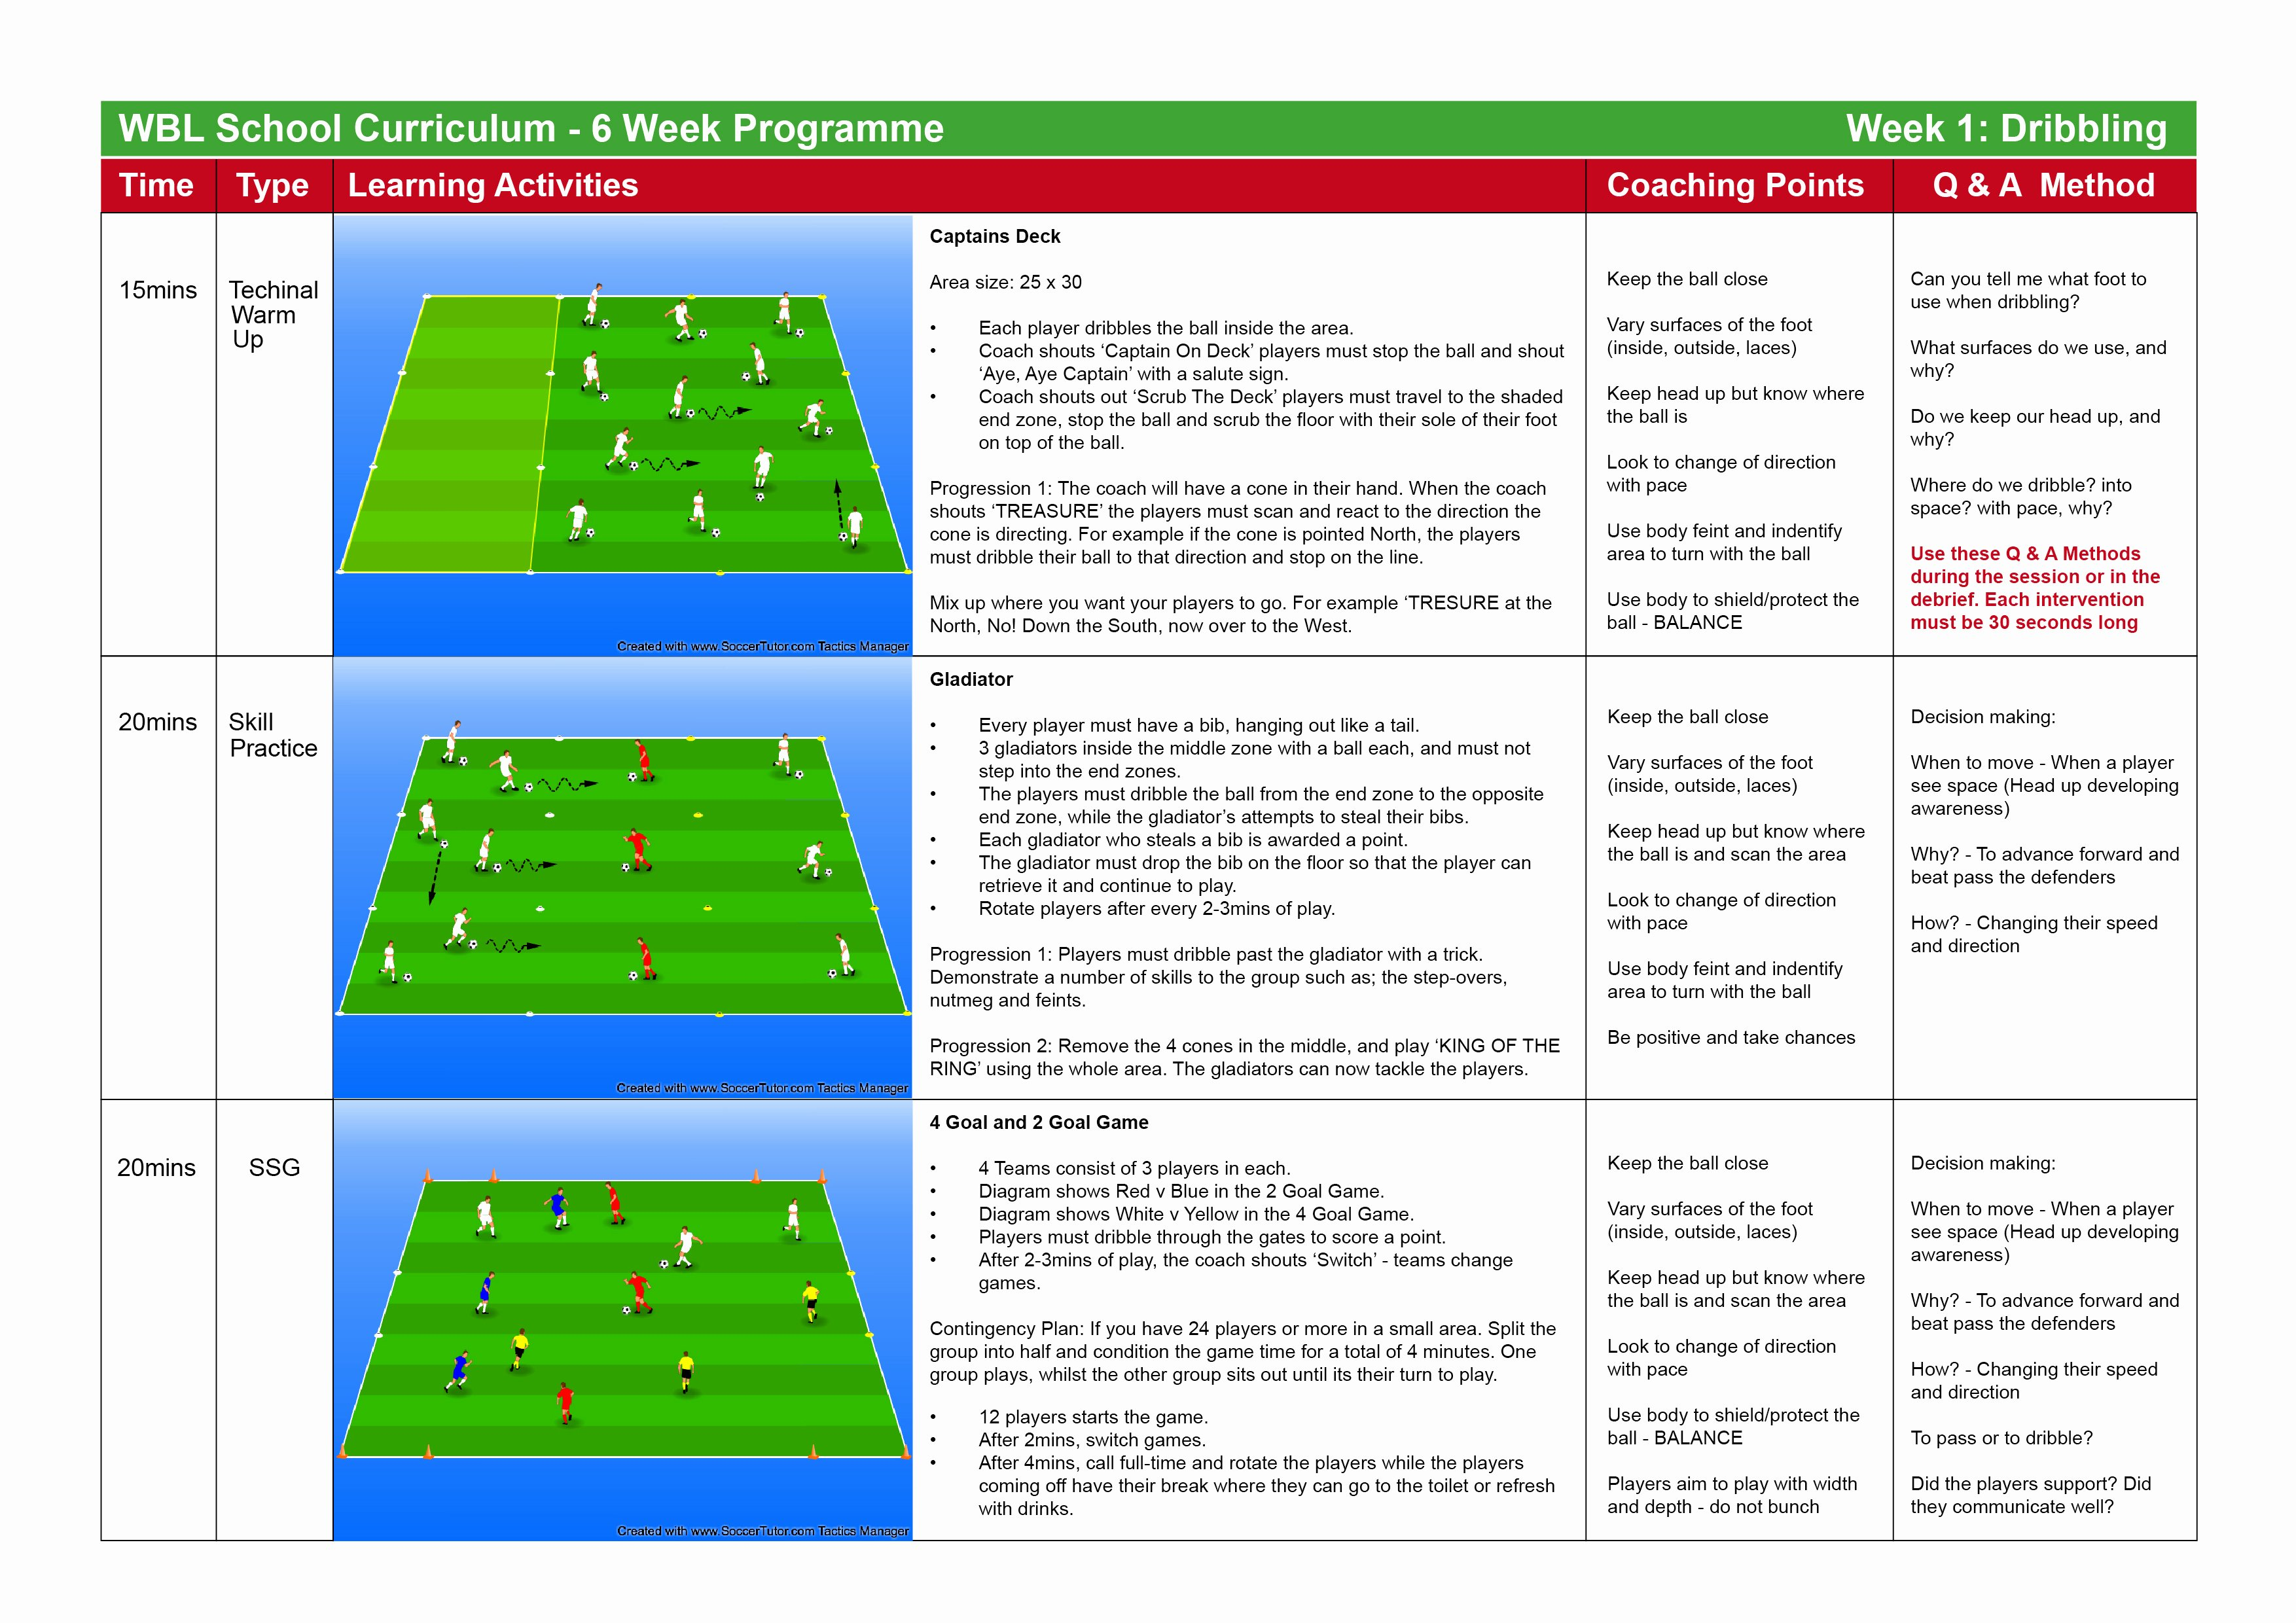 Football Session Plan Template Awesome Wbl School Curriculum – Dribbling Week 1